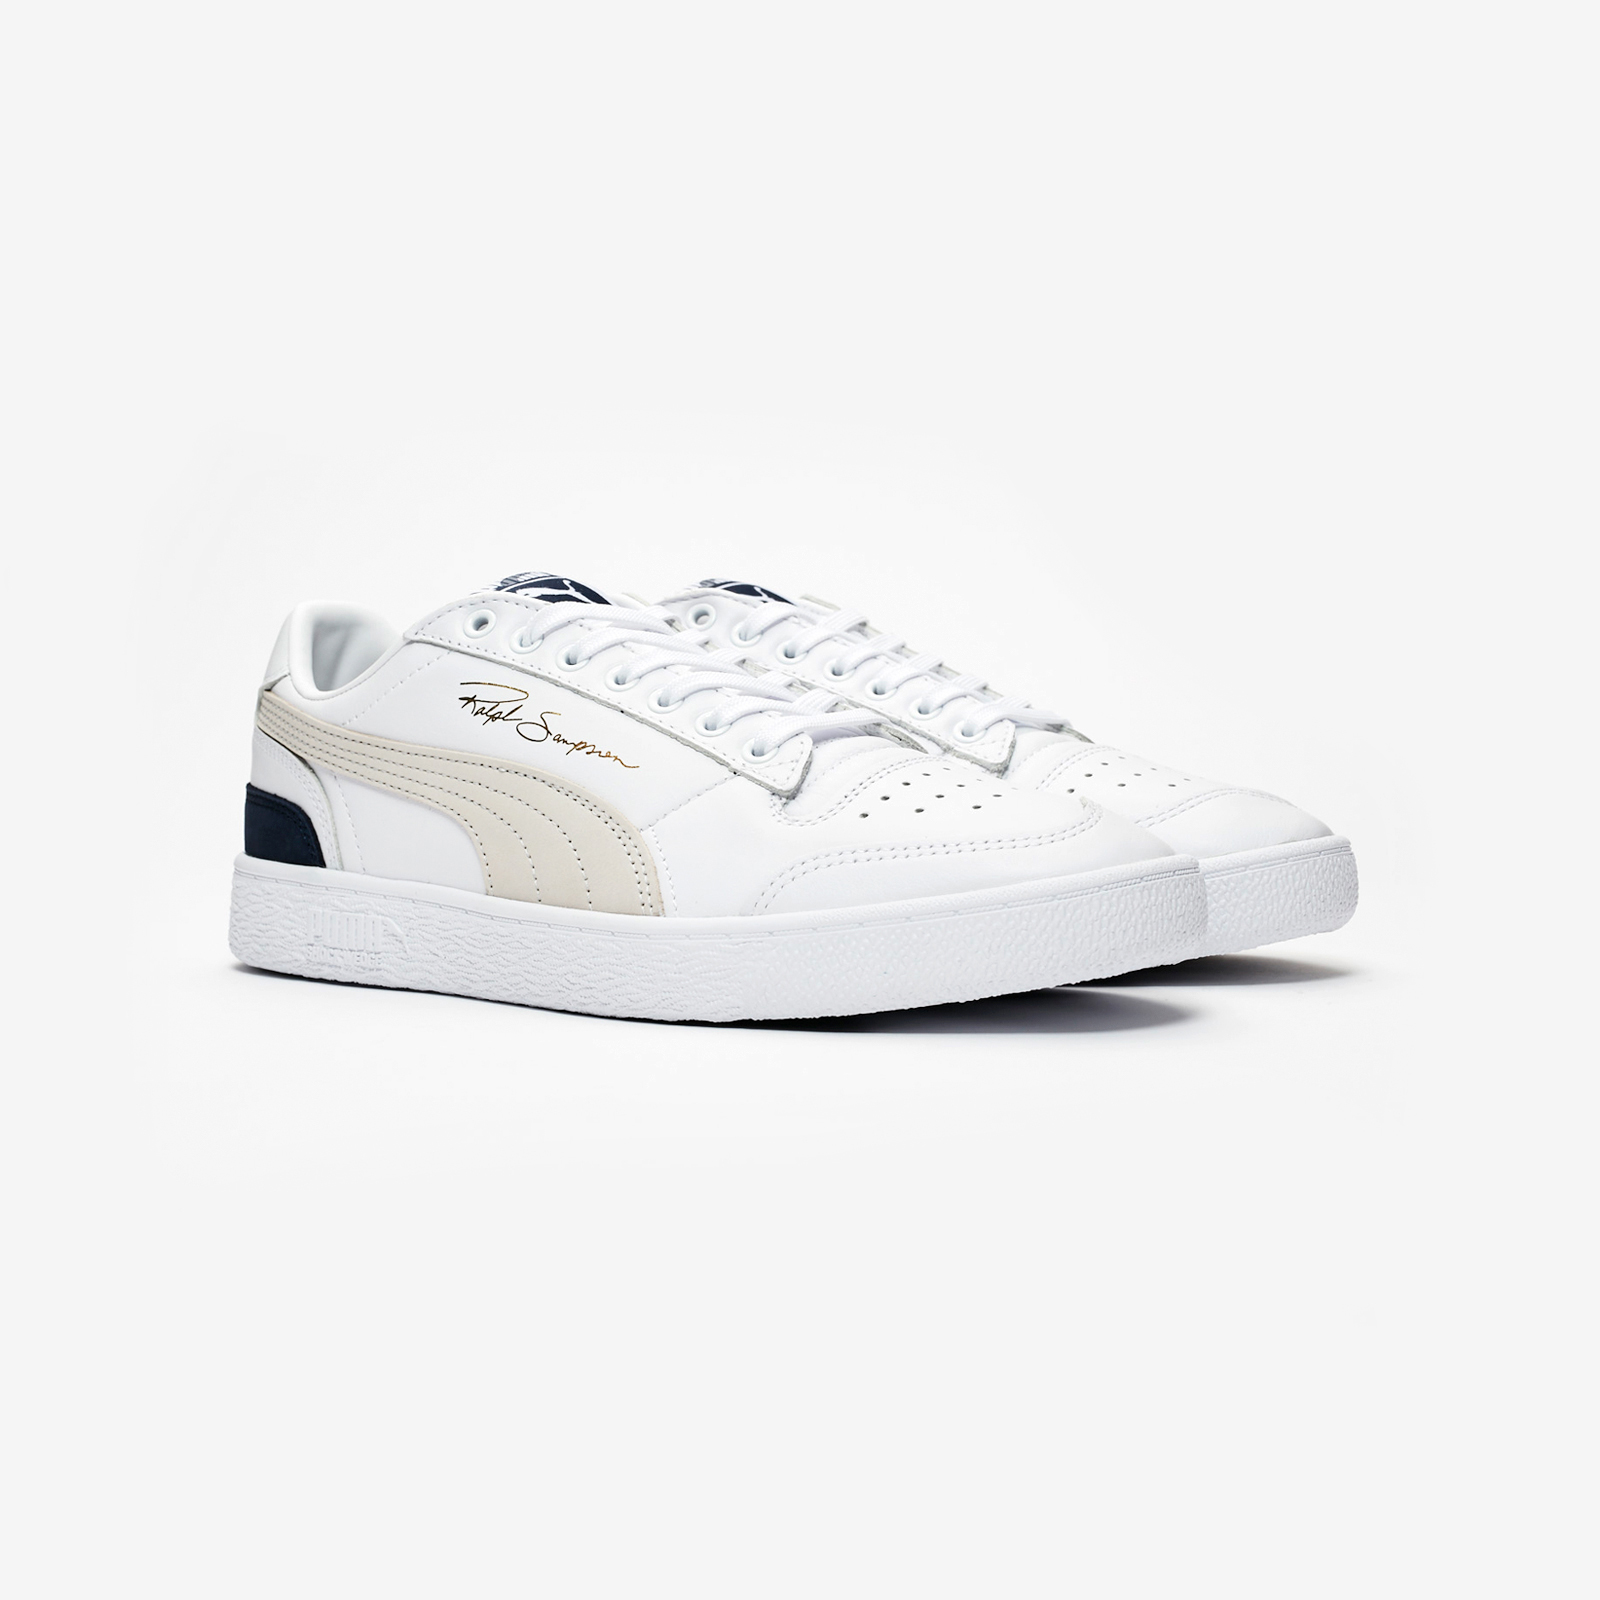 b1a8dfd4a Puma Ralph Sampson Low OG - 370719-01 - Sneakersnstuff